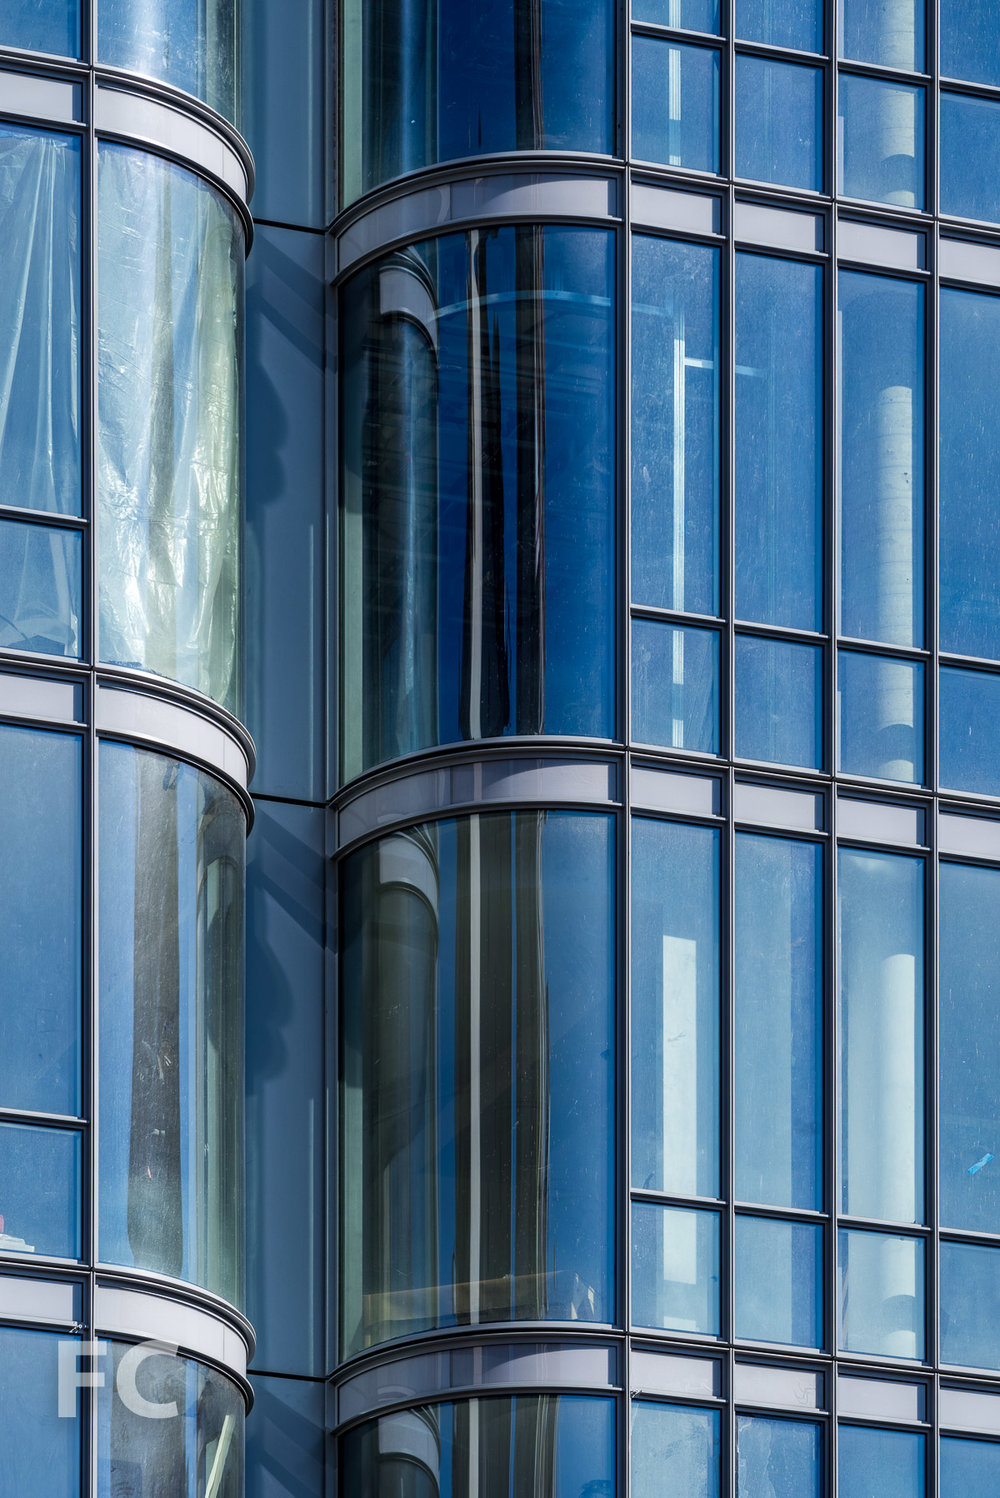 Close-up of the glass curtain wall.